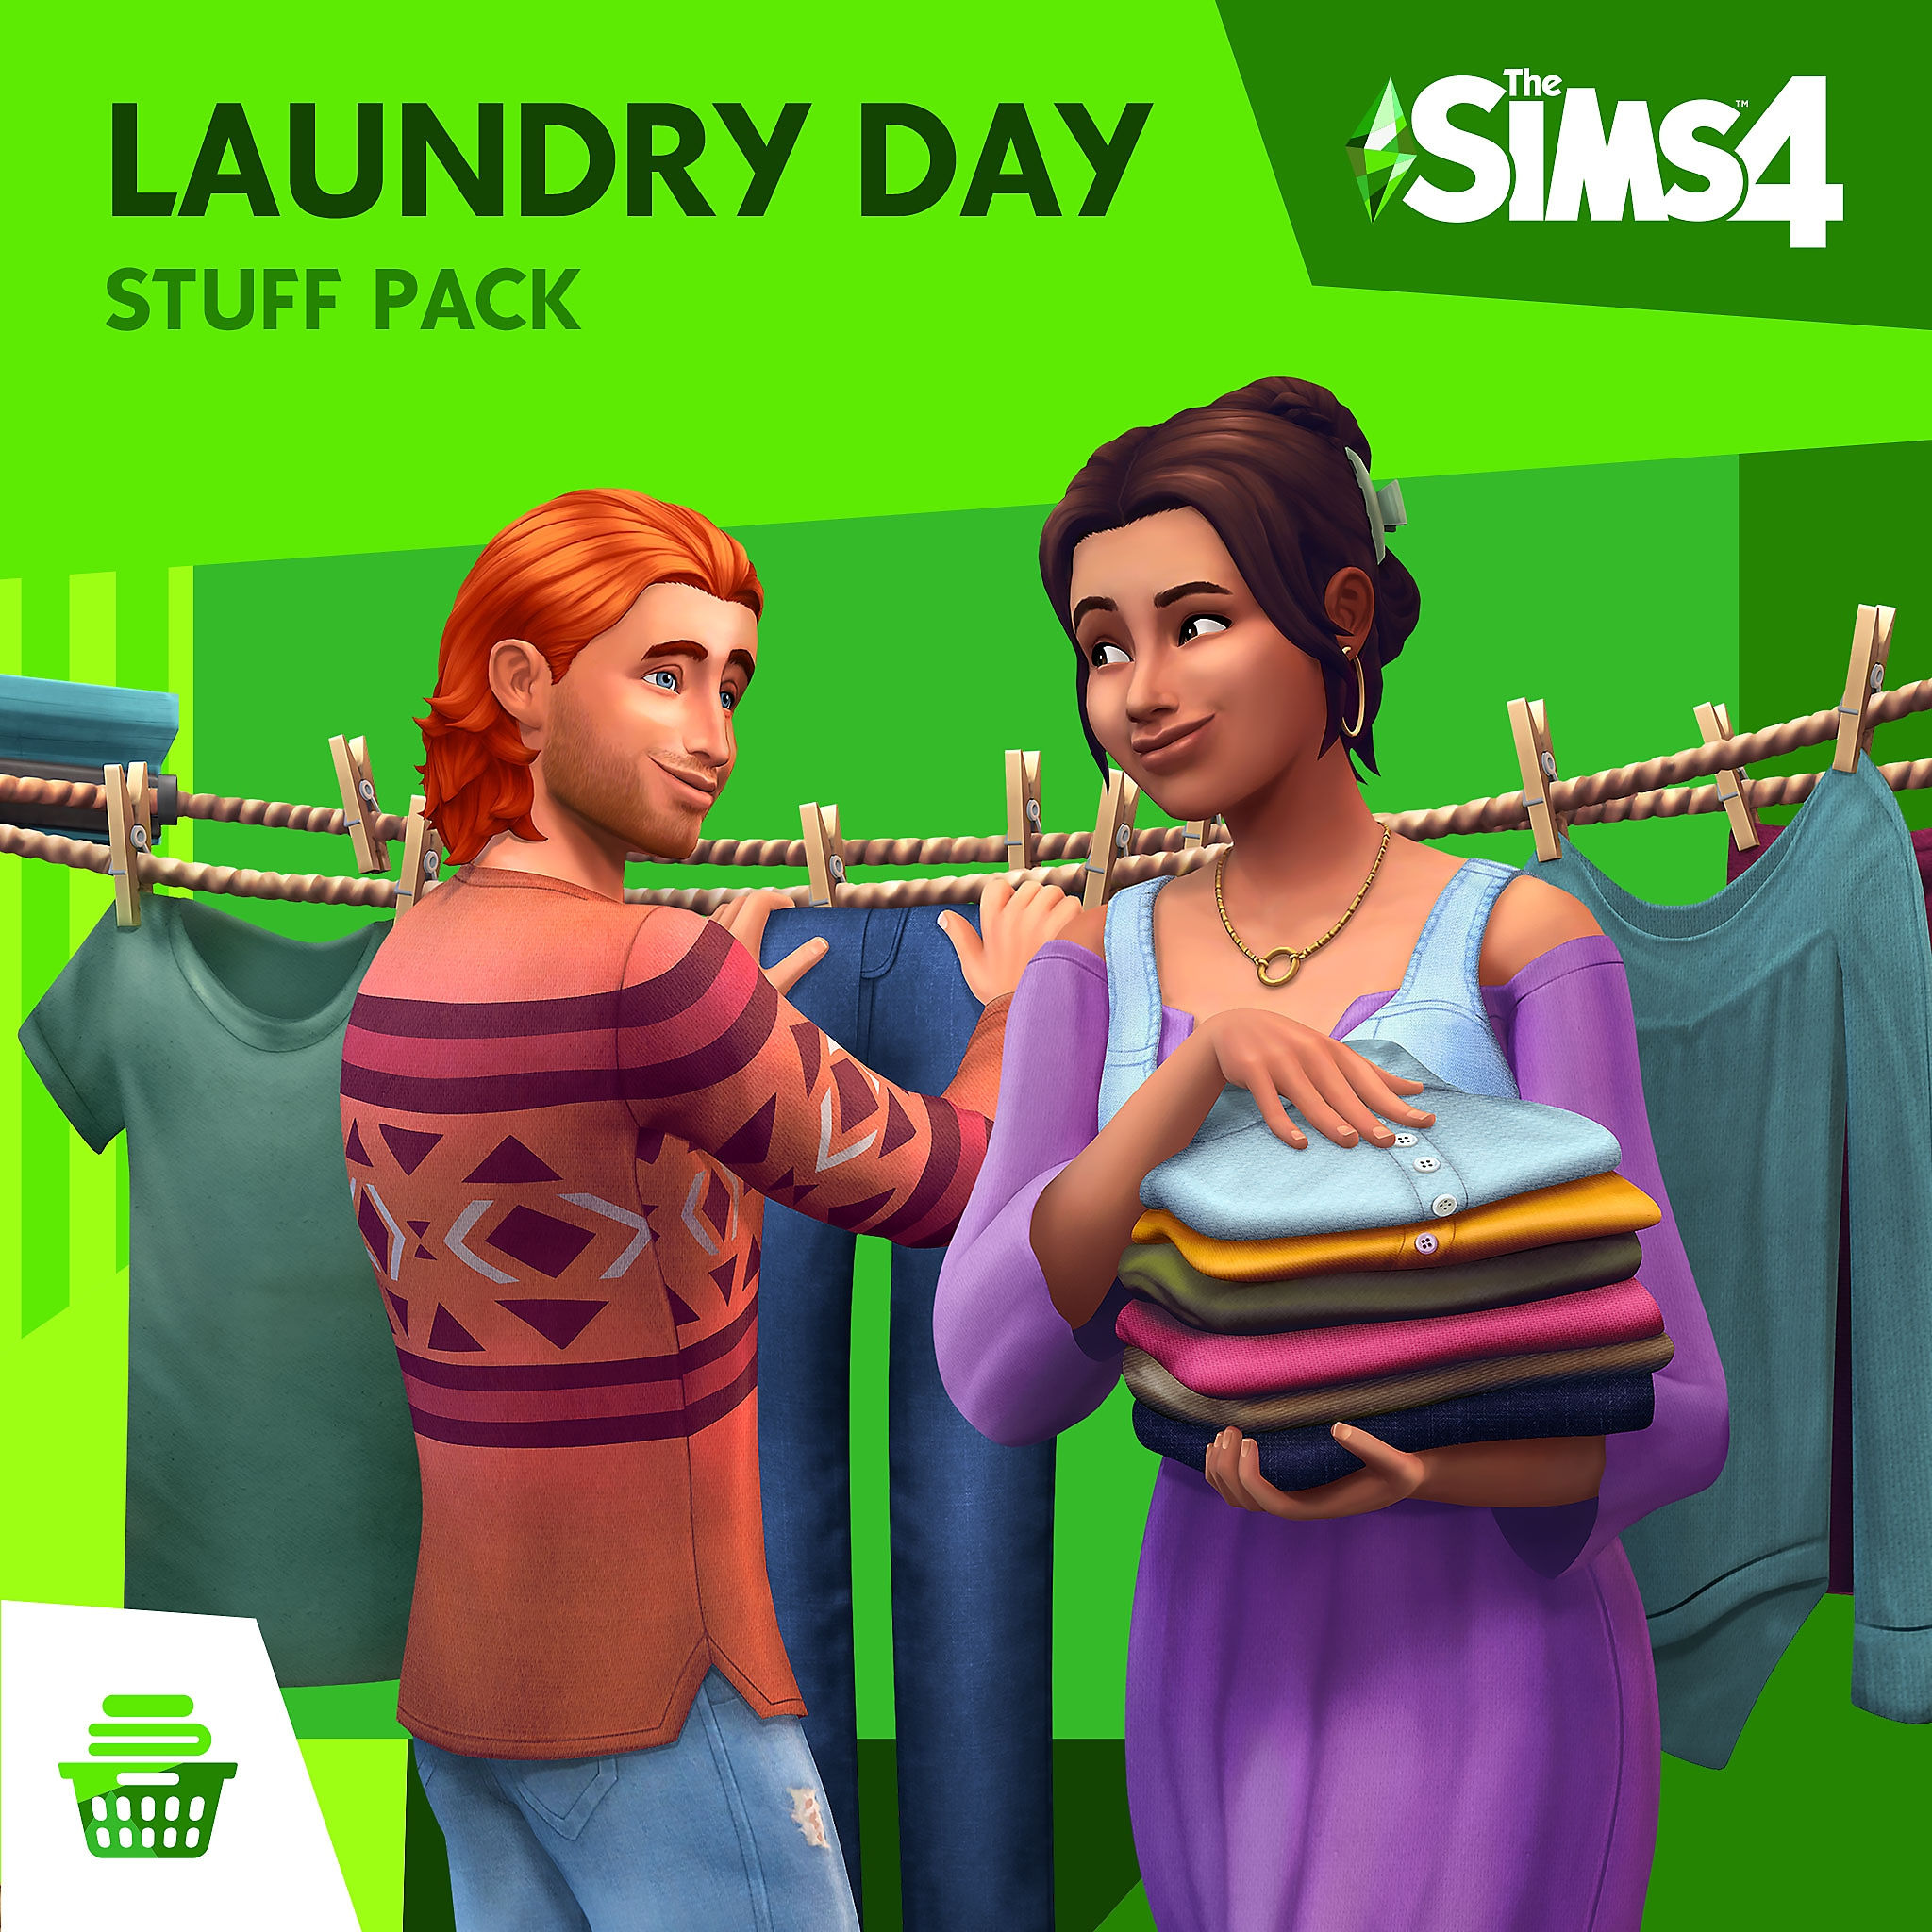 Laundry Day Stuff Pack